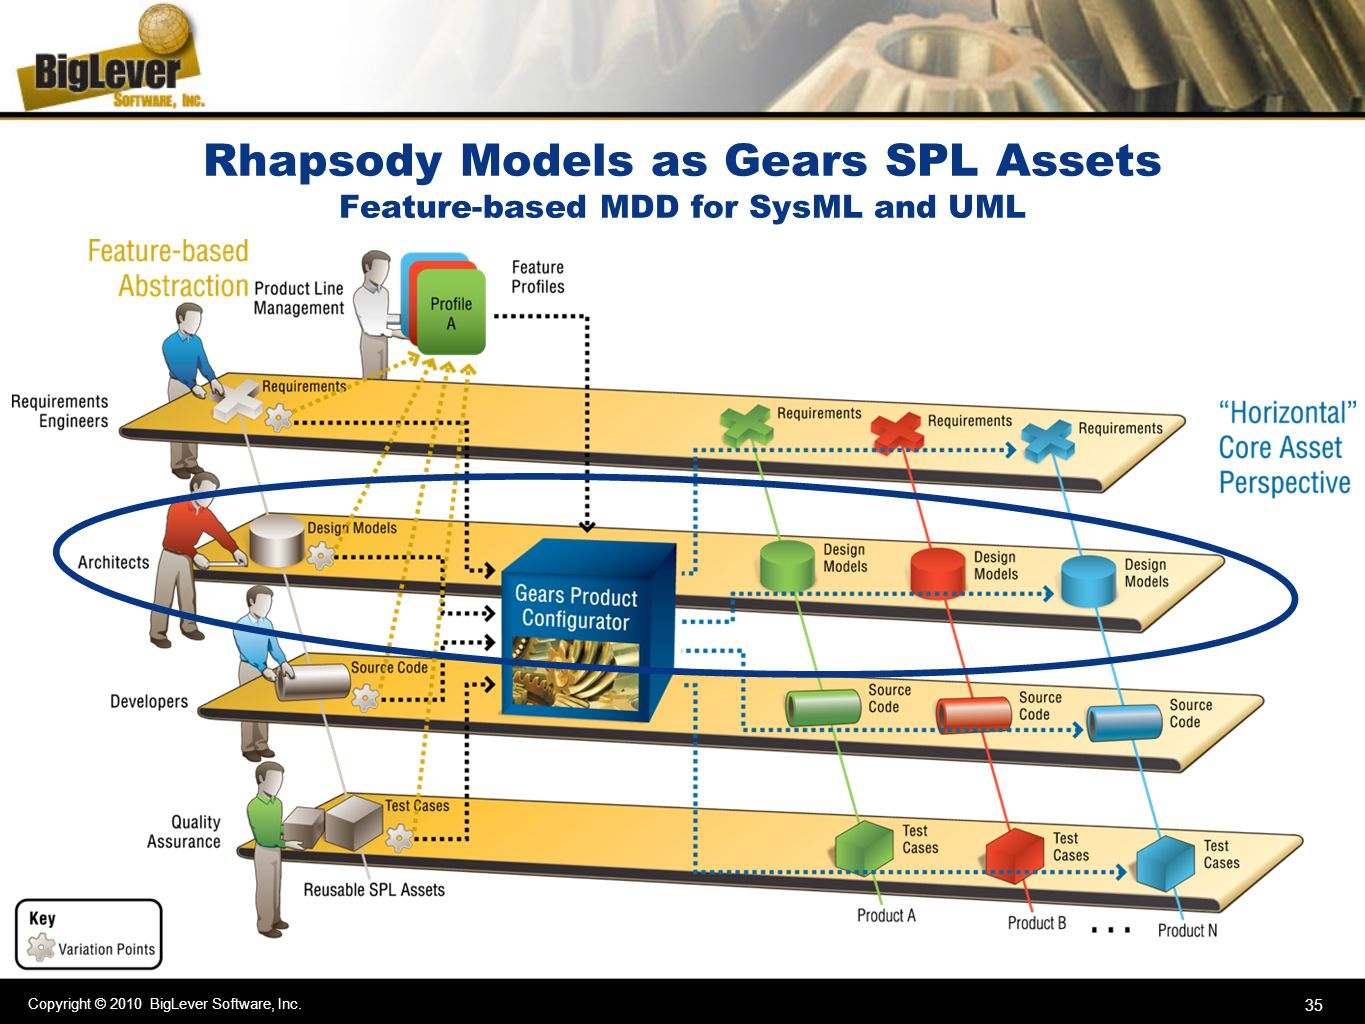 Rhapsody Models as Gears SPL Assets Feature-based MDD for SysML and UML